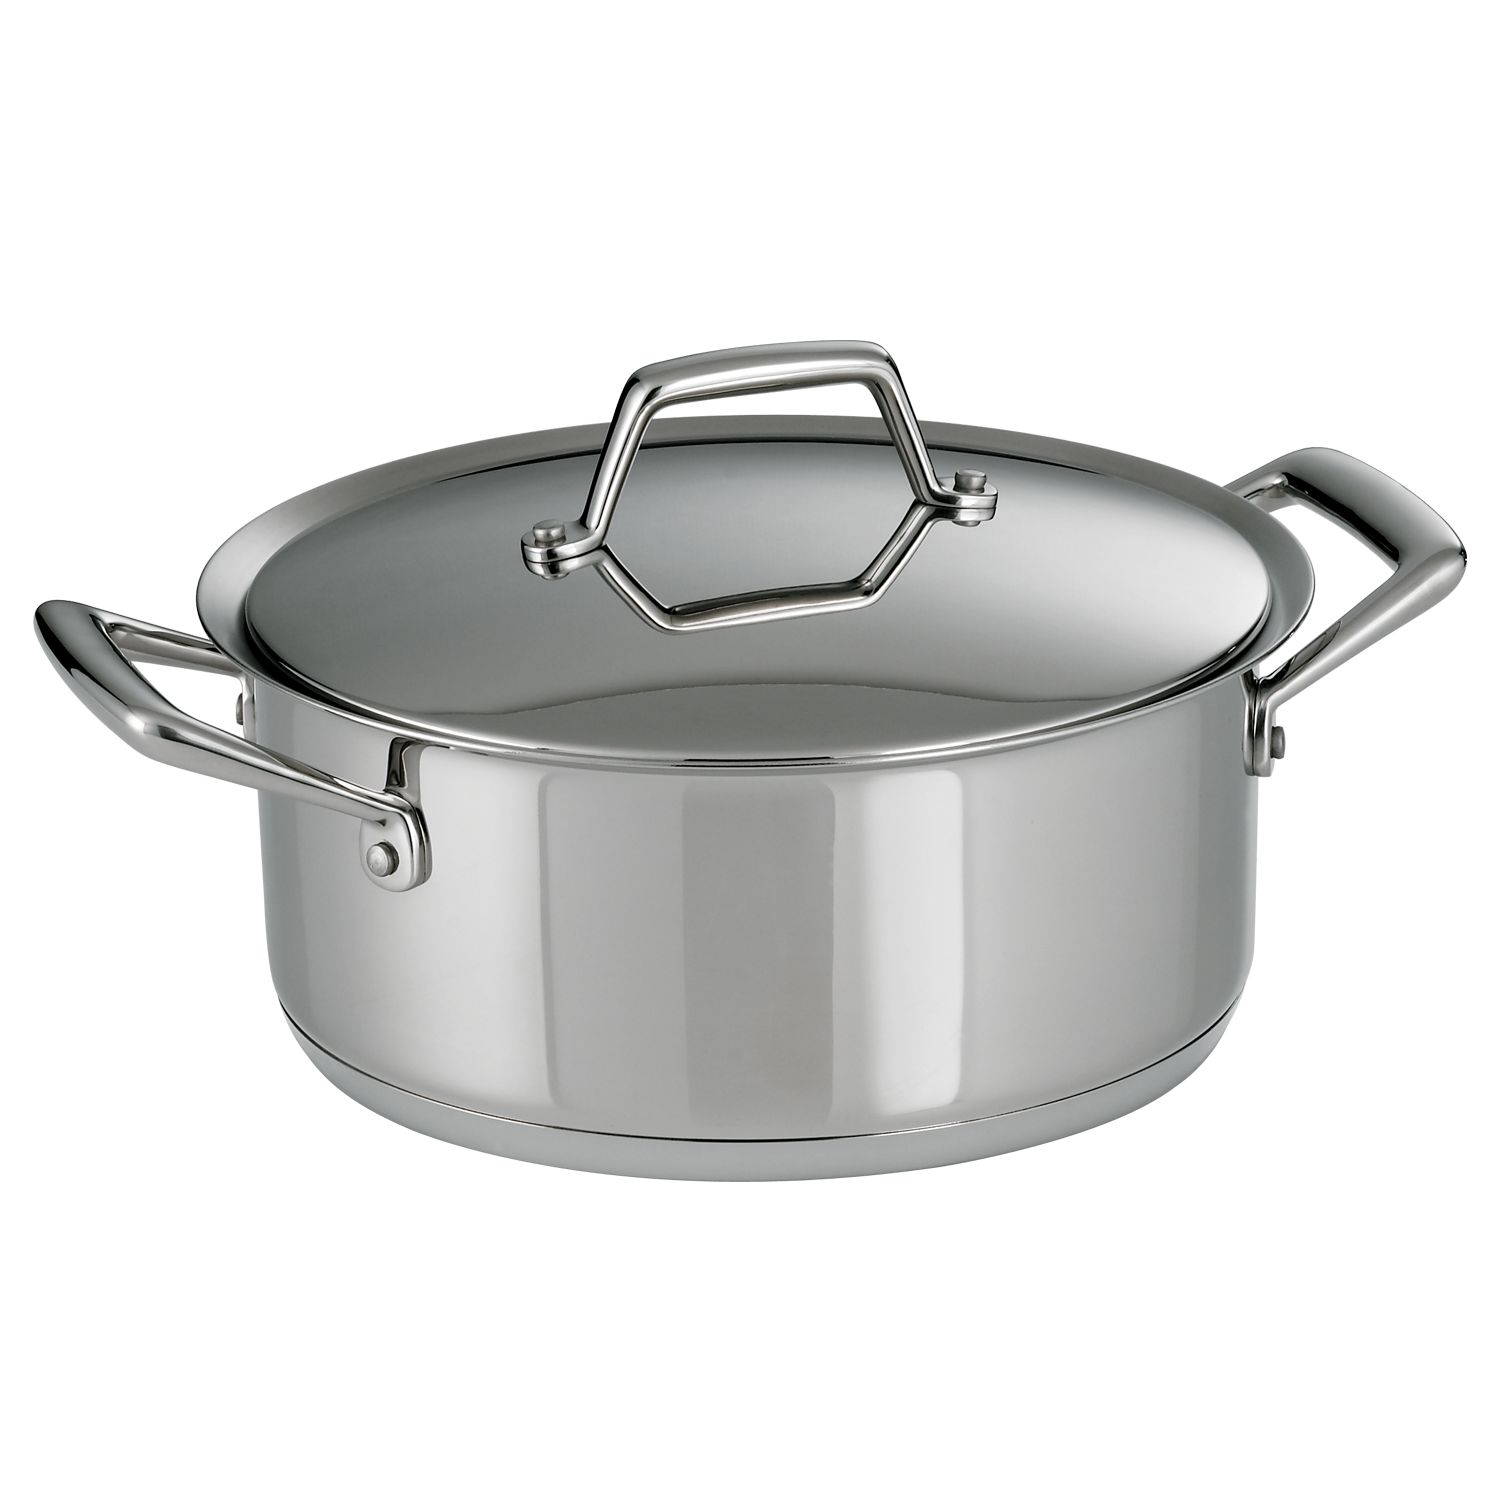 Prima 5-qt. Stainless Steel Tri-Ply Covered Dutch Oven